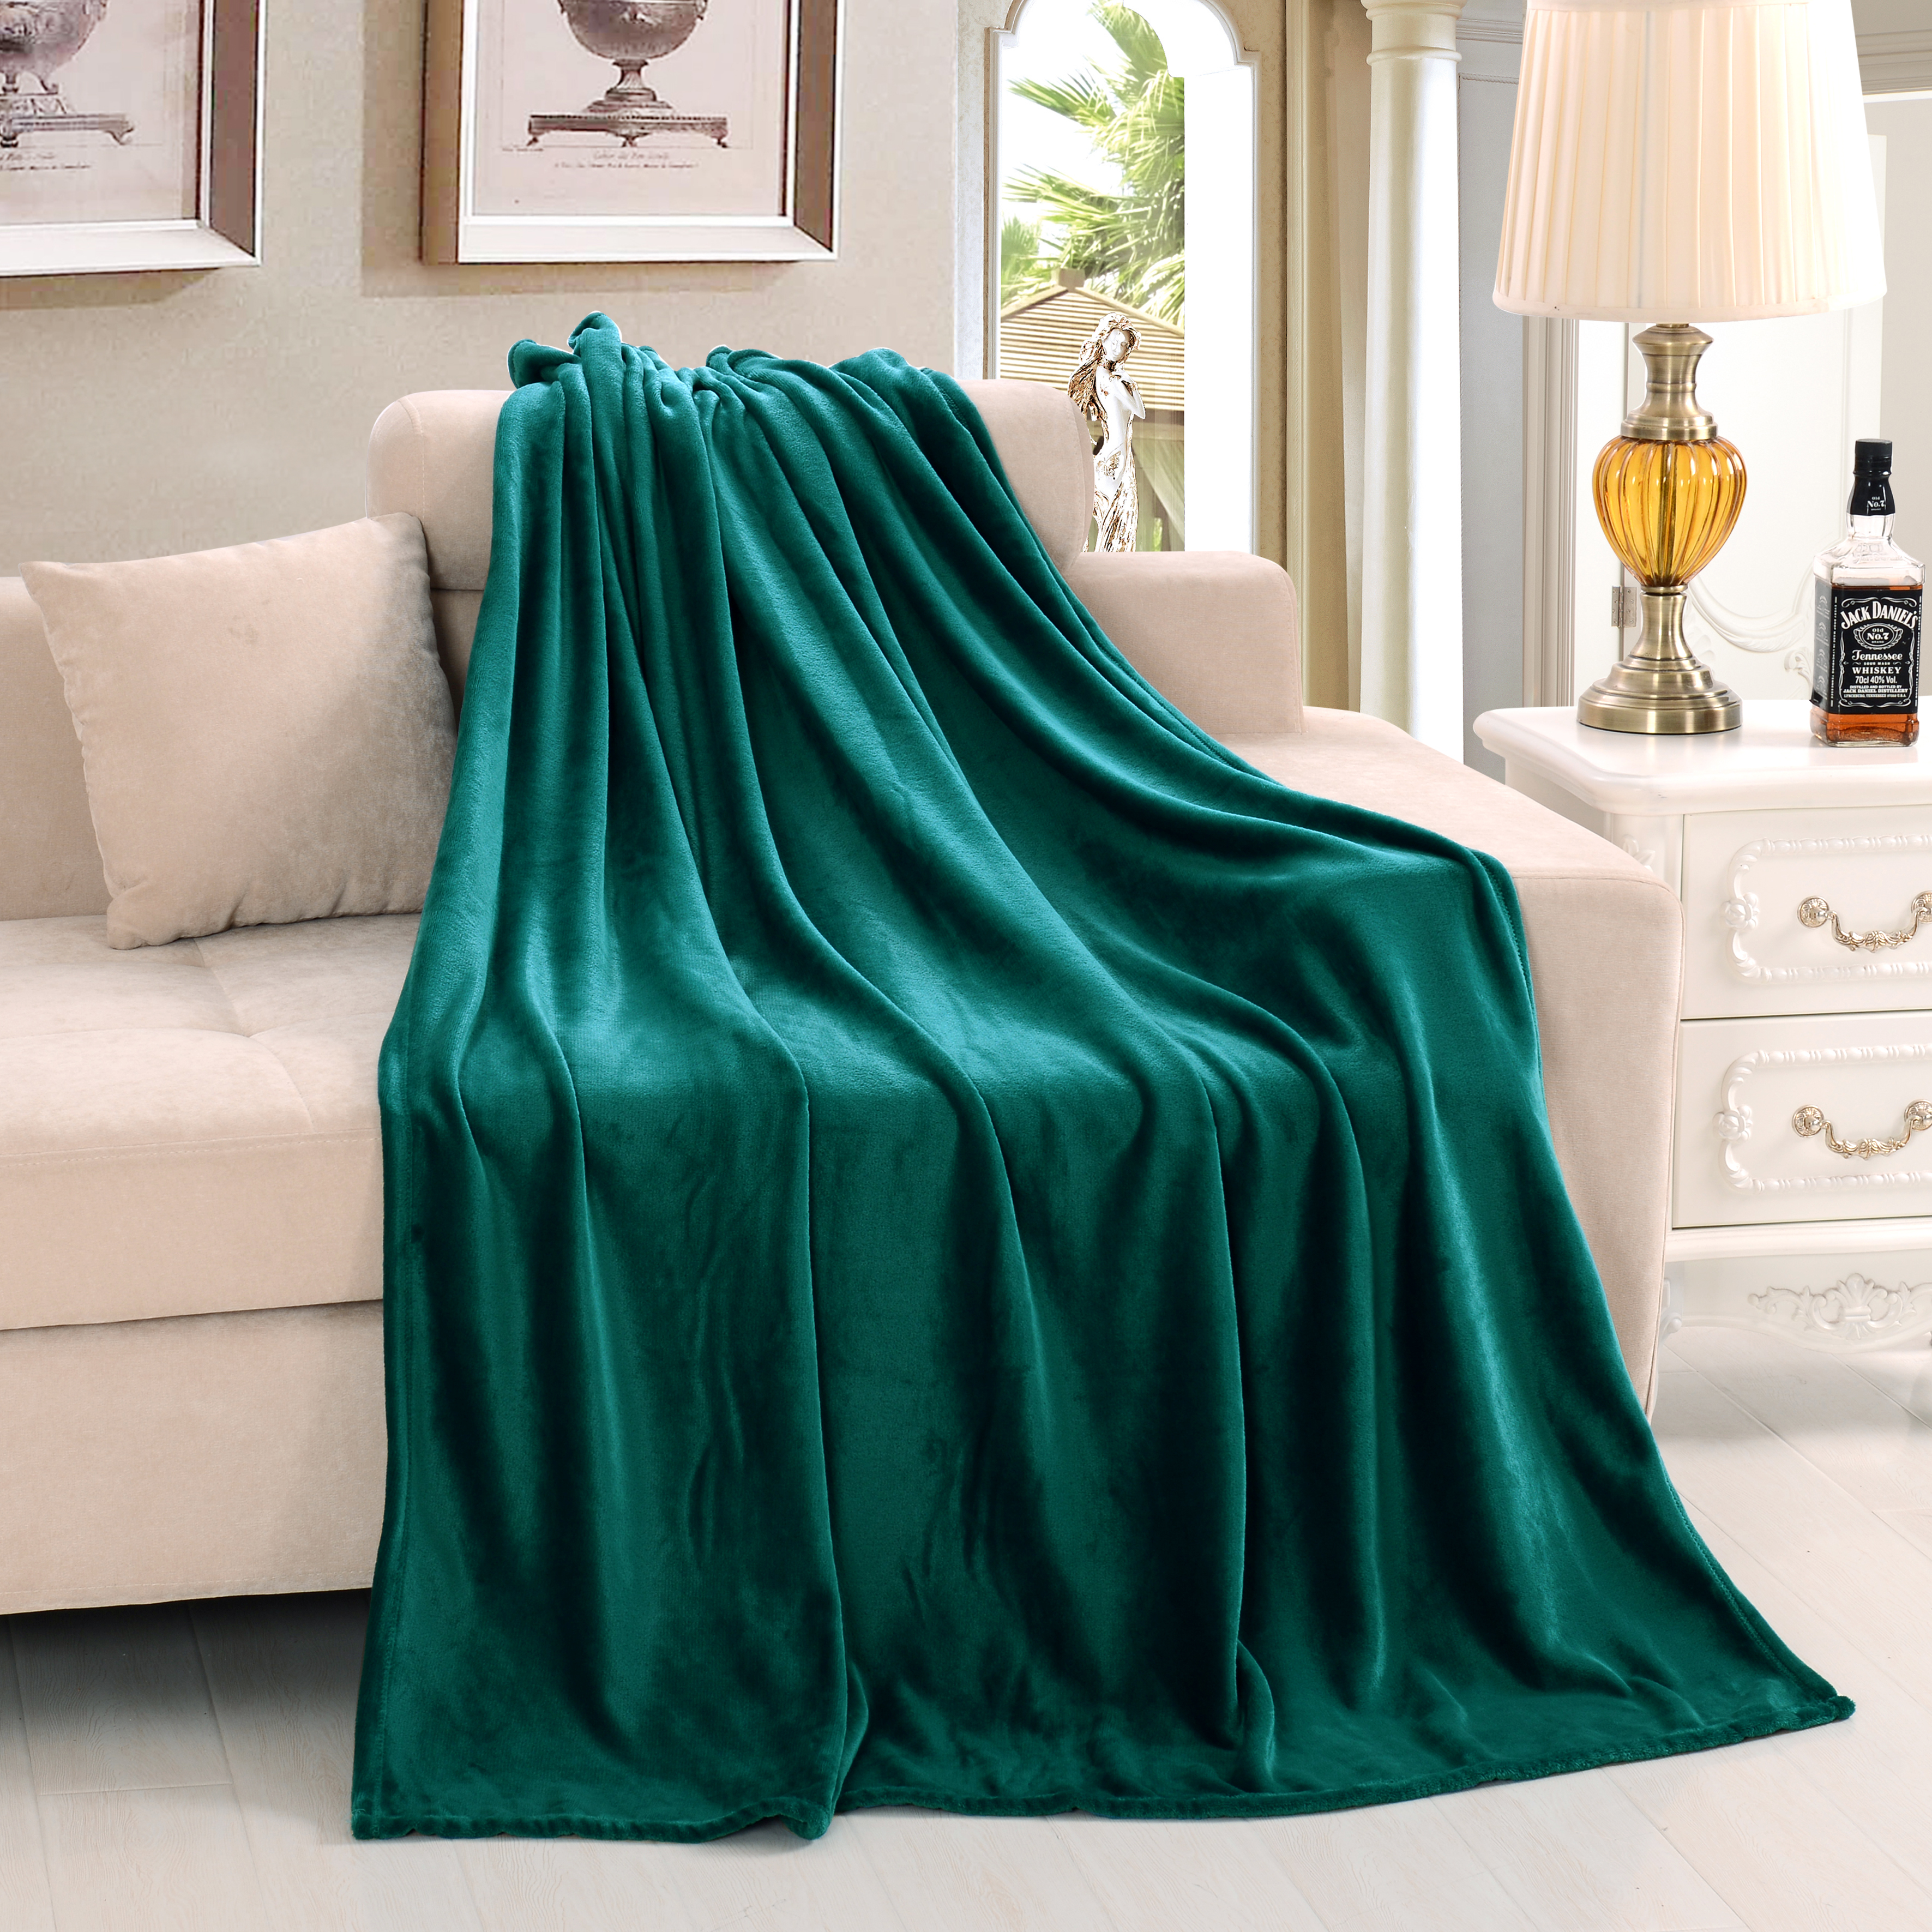 King Size Bed Throws Us 48 88 220 240 Queen King Size Super Soft Warm Winter Blanket Throws On Bed Sofa Pure Color High Quality Flano Flannel Free Shipping In Blankets